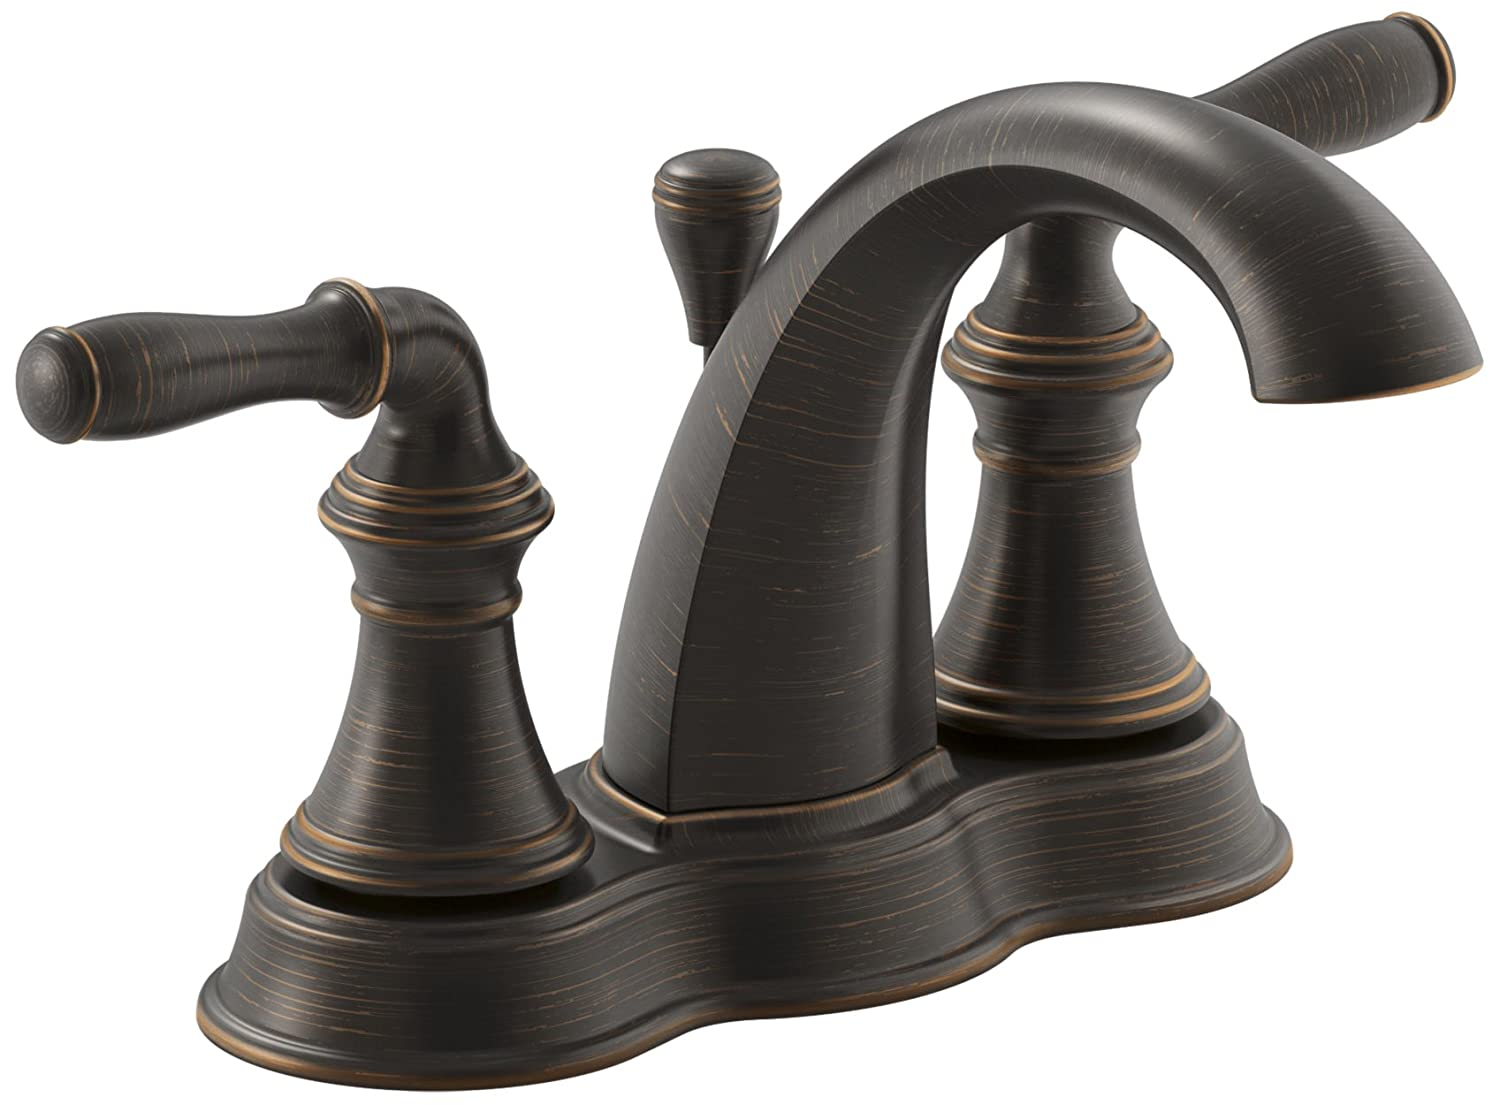 Good kohler k 393 n4 2bz devonshire 4 inch centerset lavatory faucet oil rubbed bronze www for Bathroom sink faucets 4 inch centerset